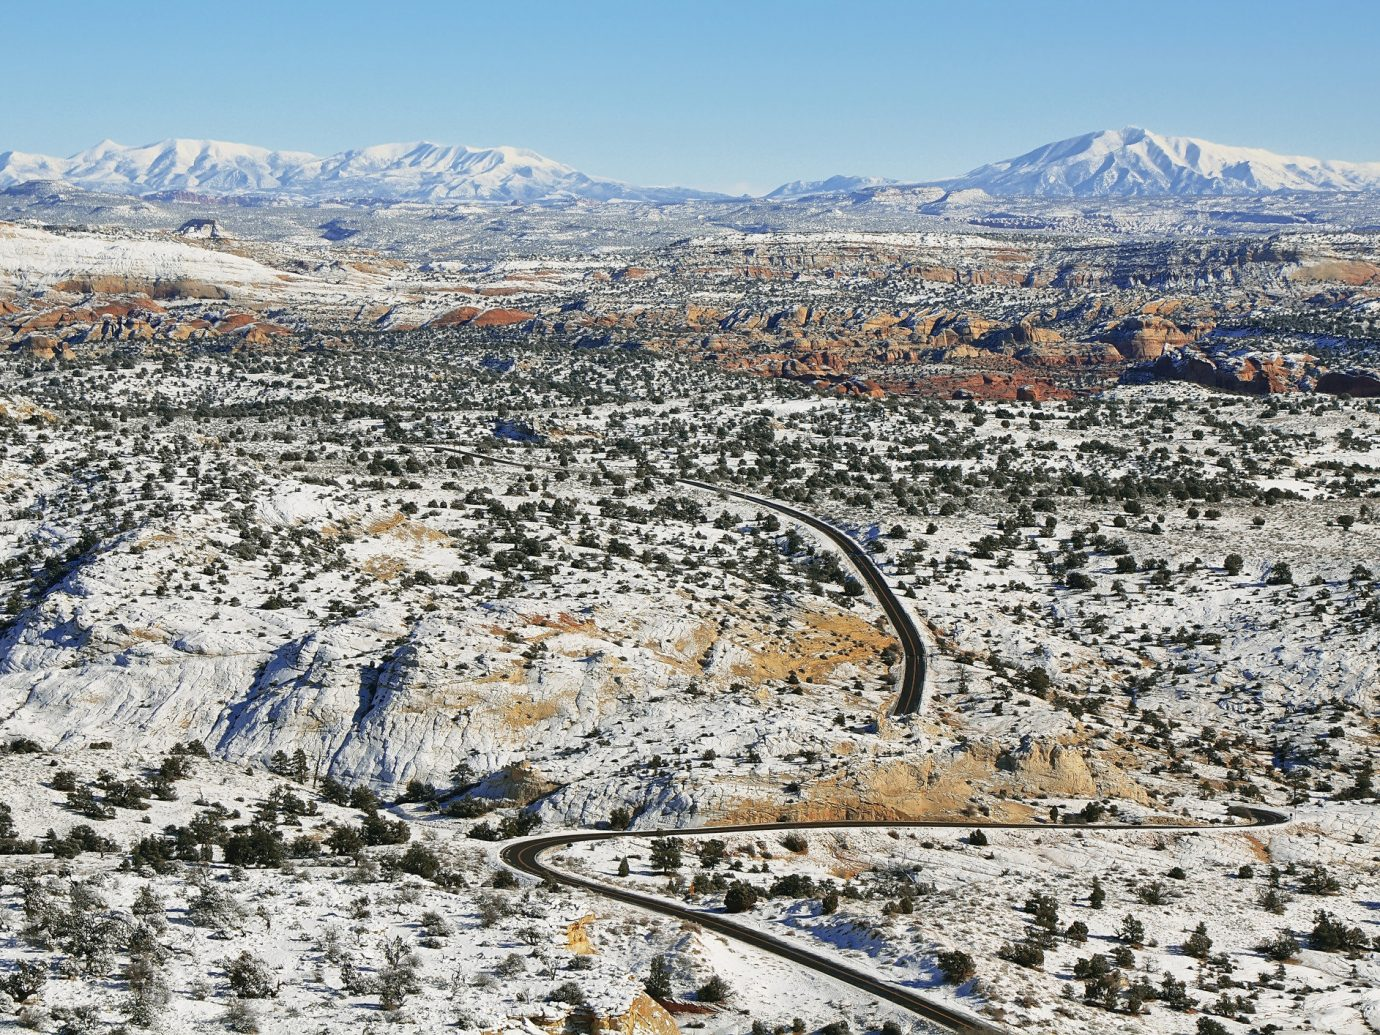 Road Trips Trip Ideas outdoor sky mountain aerial photography snow photography Winter geological phenomenon residential area landscape mountain range Nature geology panorama piste cityscape